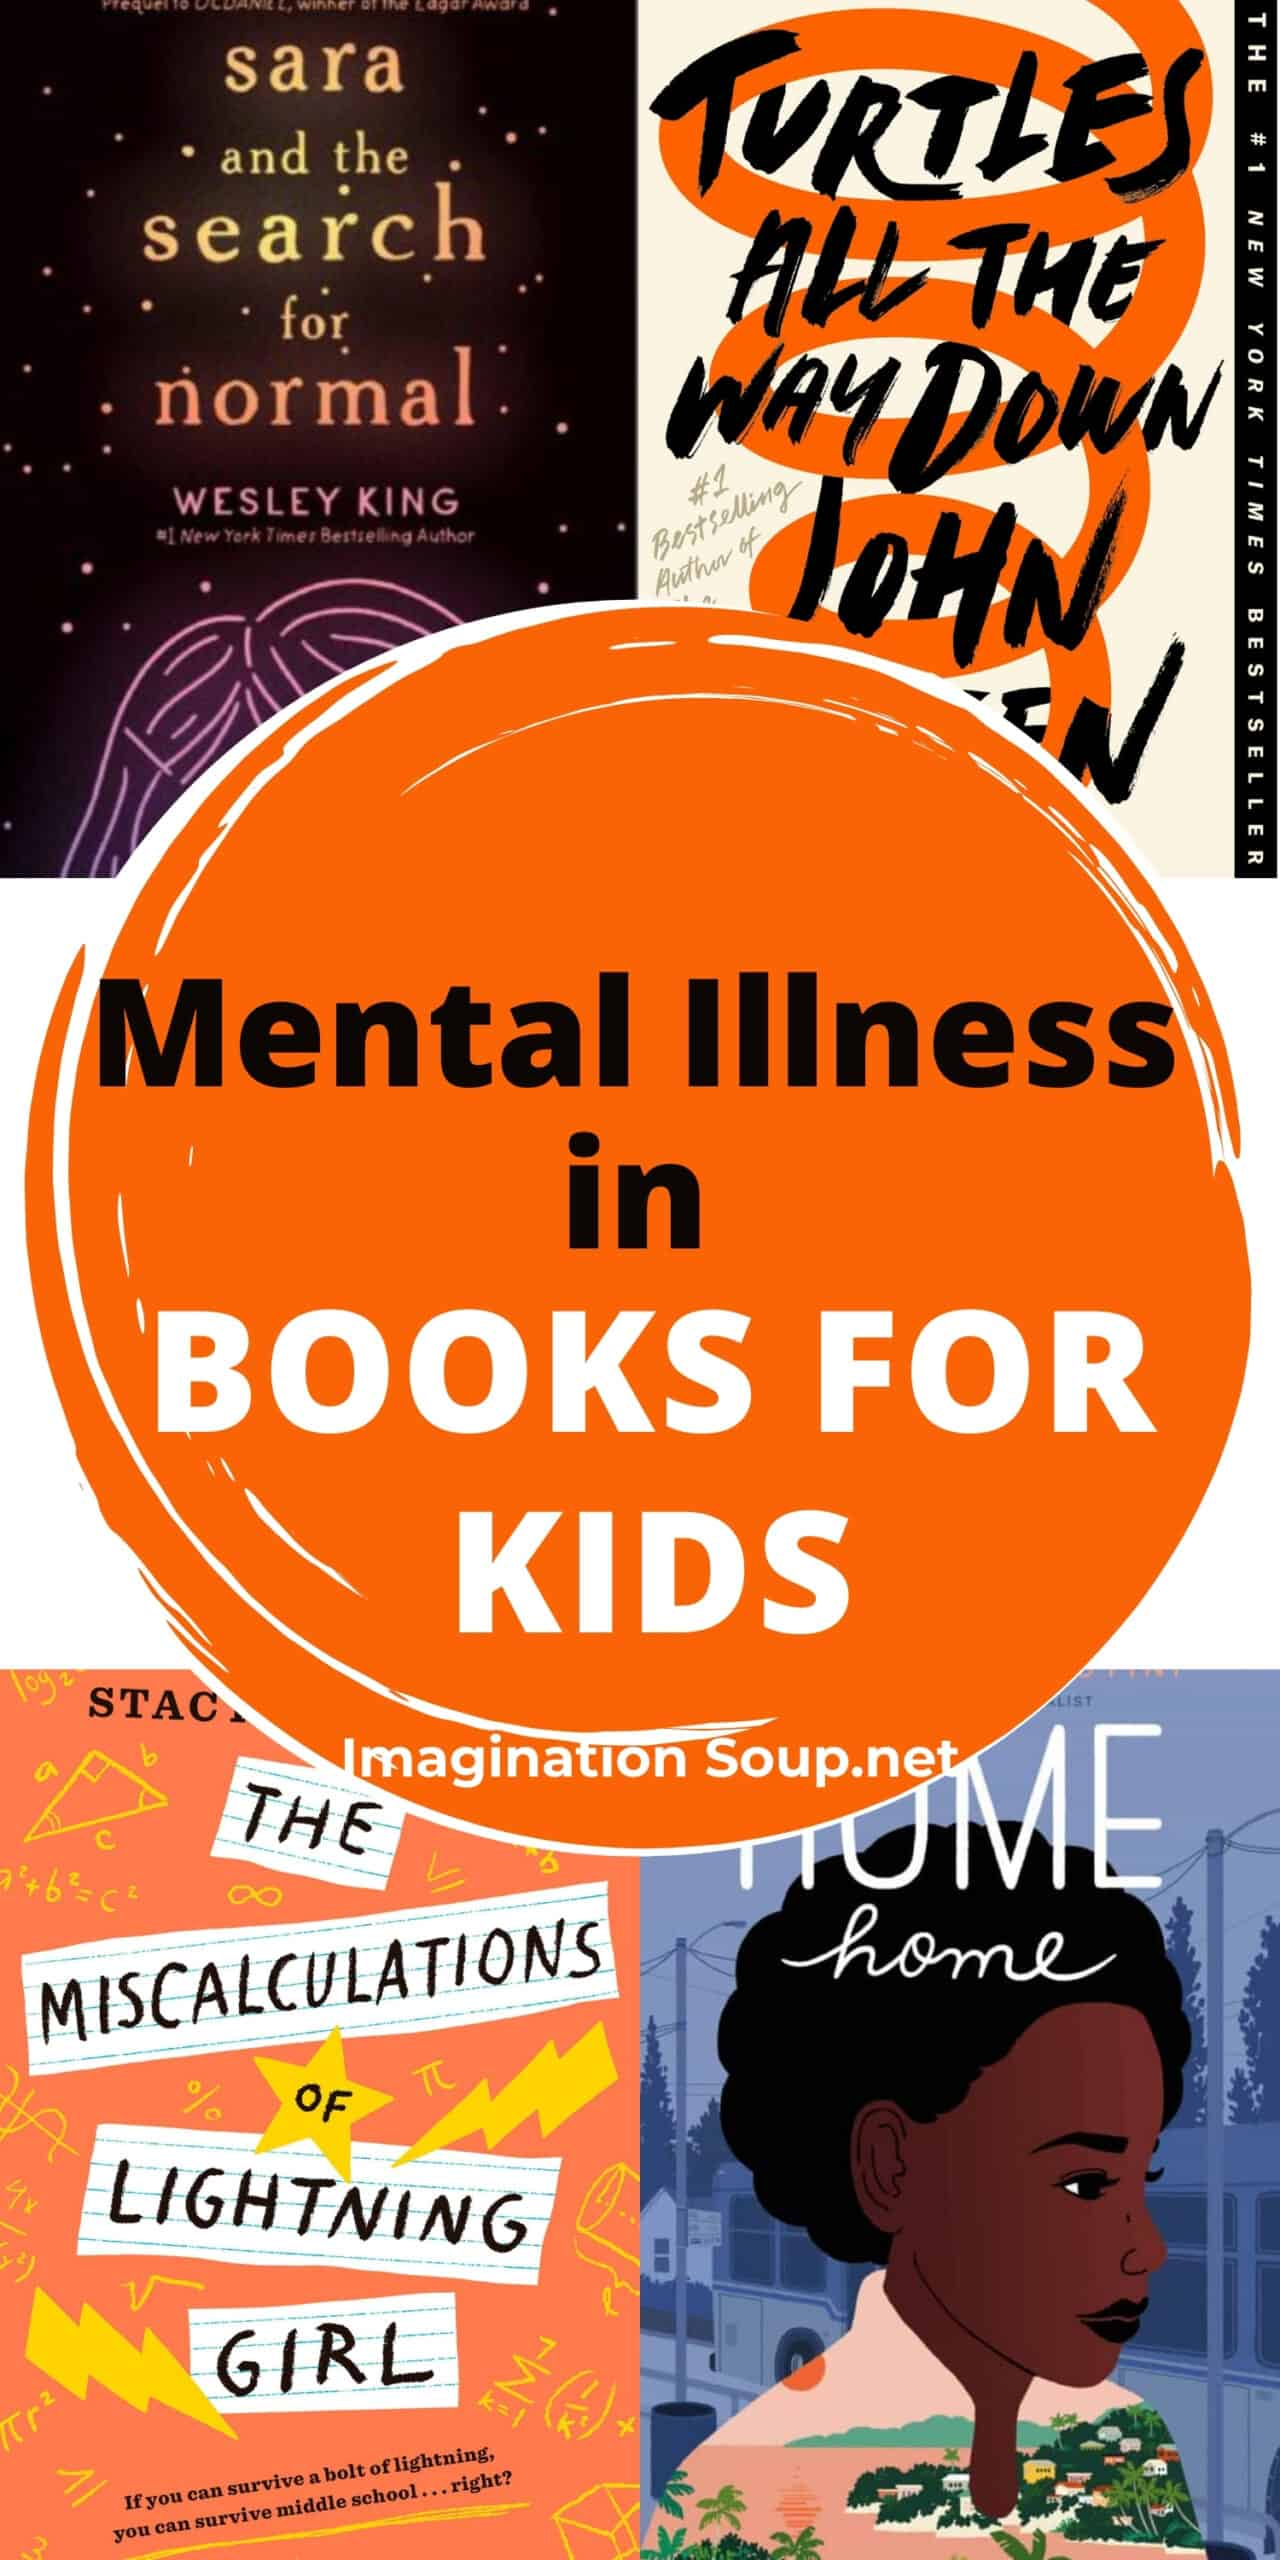 mental illness in books for kids ages 2 - 18